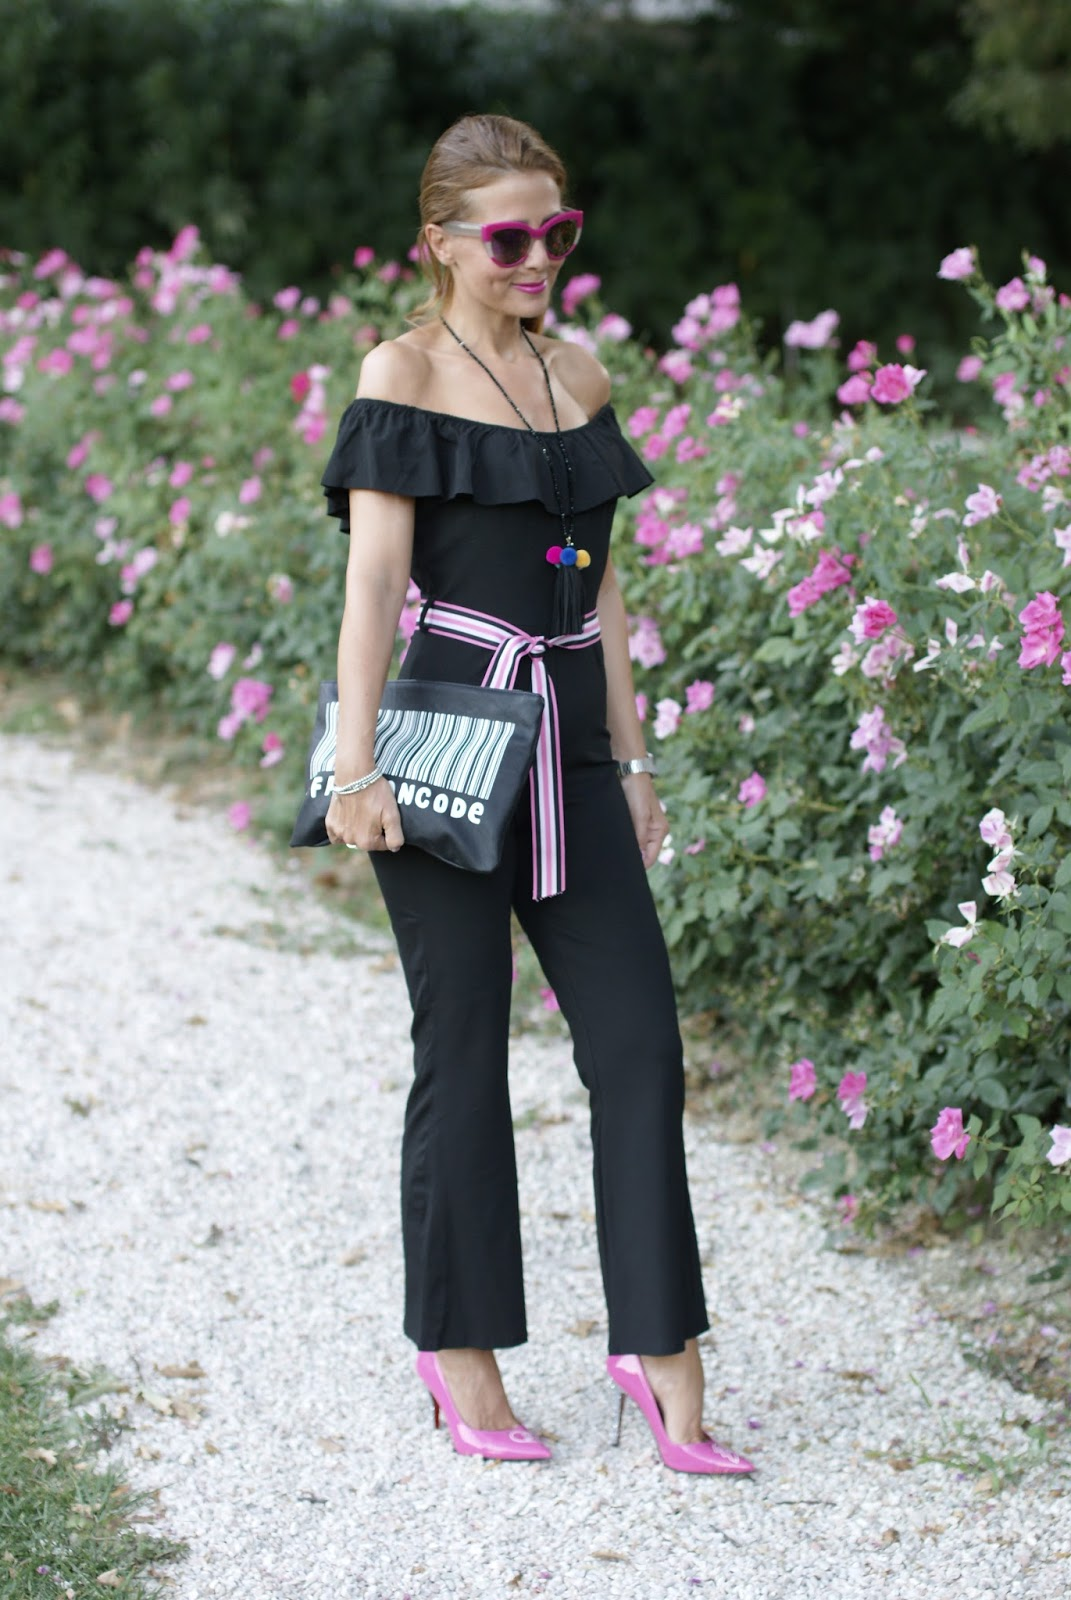 Elegant party jumpsuits outfit ideas | Fashion and Cookies - fashion and beauty blog